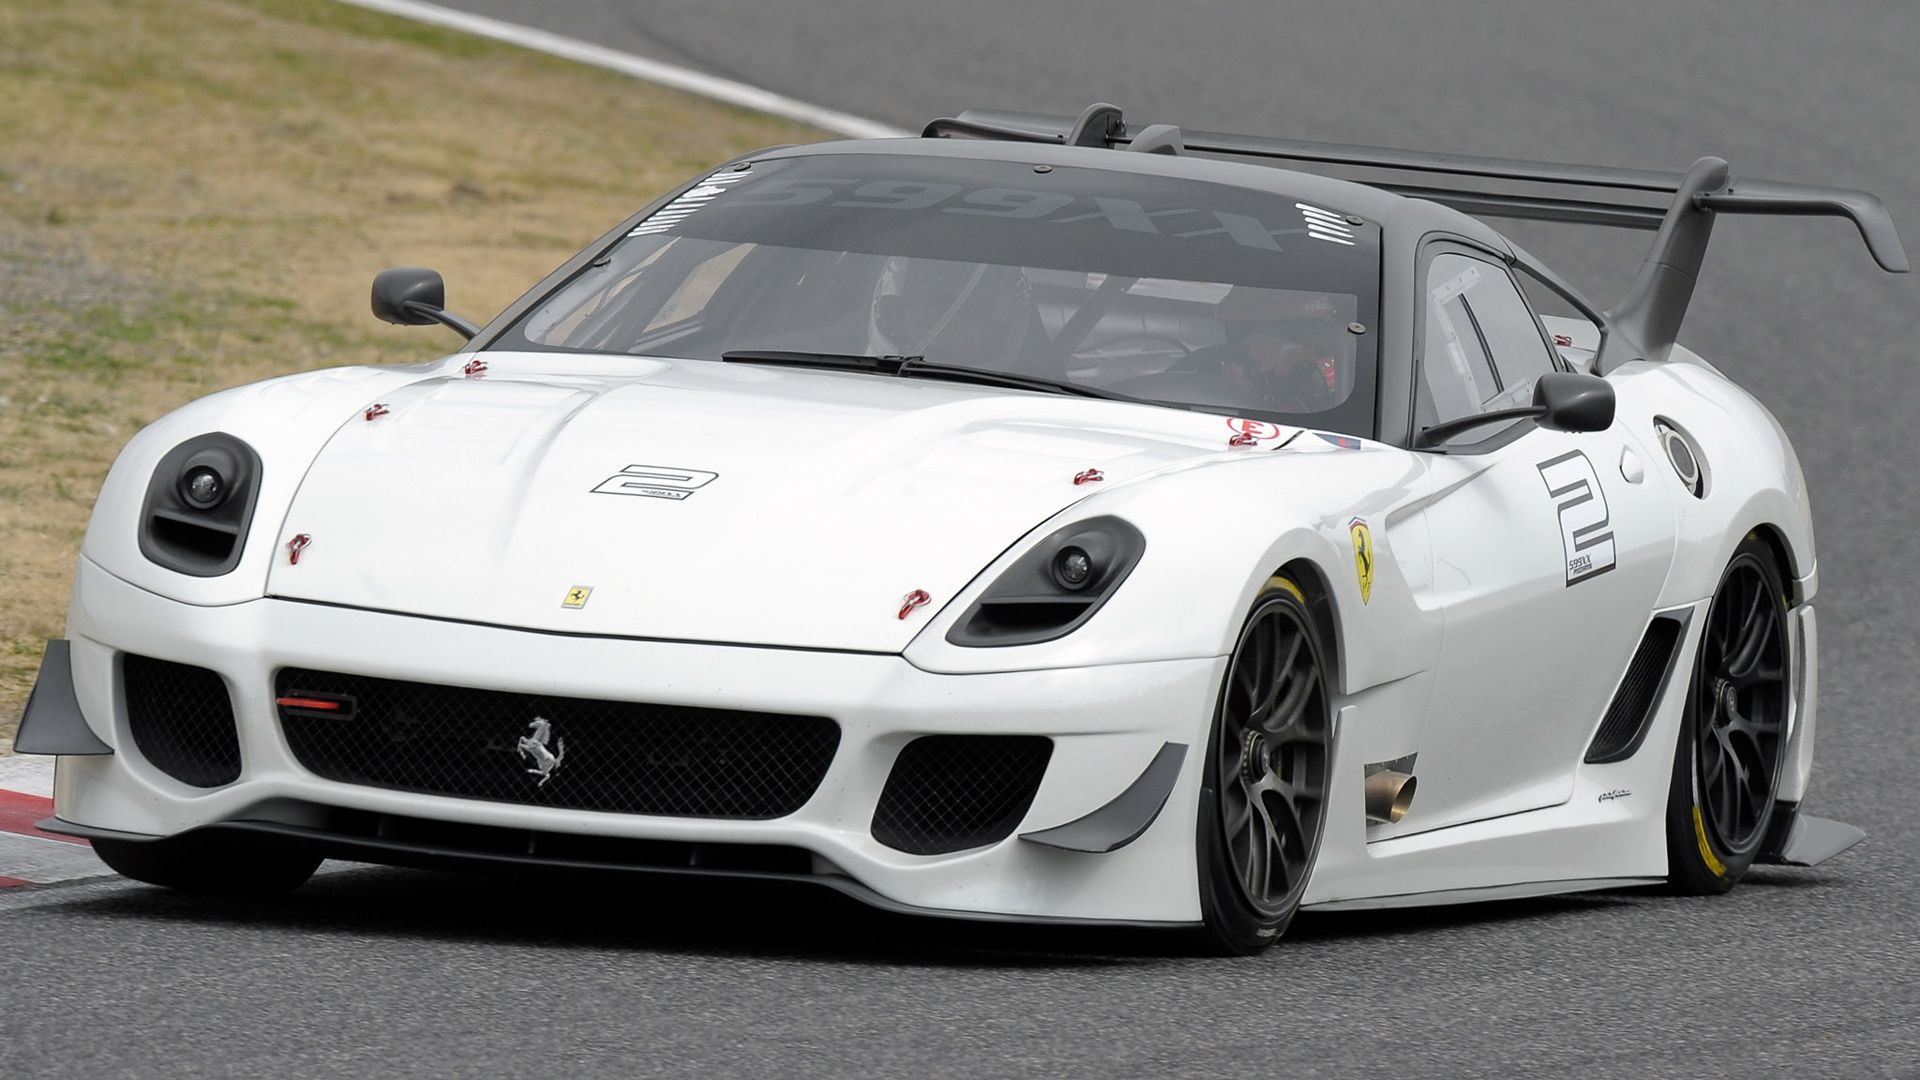 Amazing car ferrari 599 xx evoluzione on hd wallpapers http www hotszots